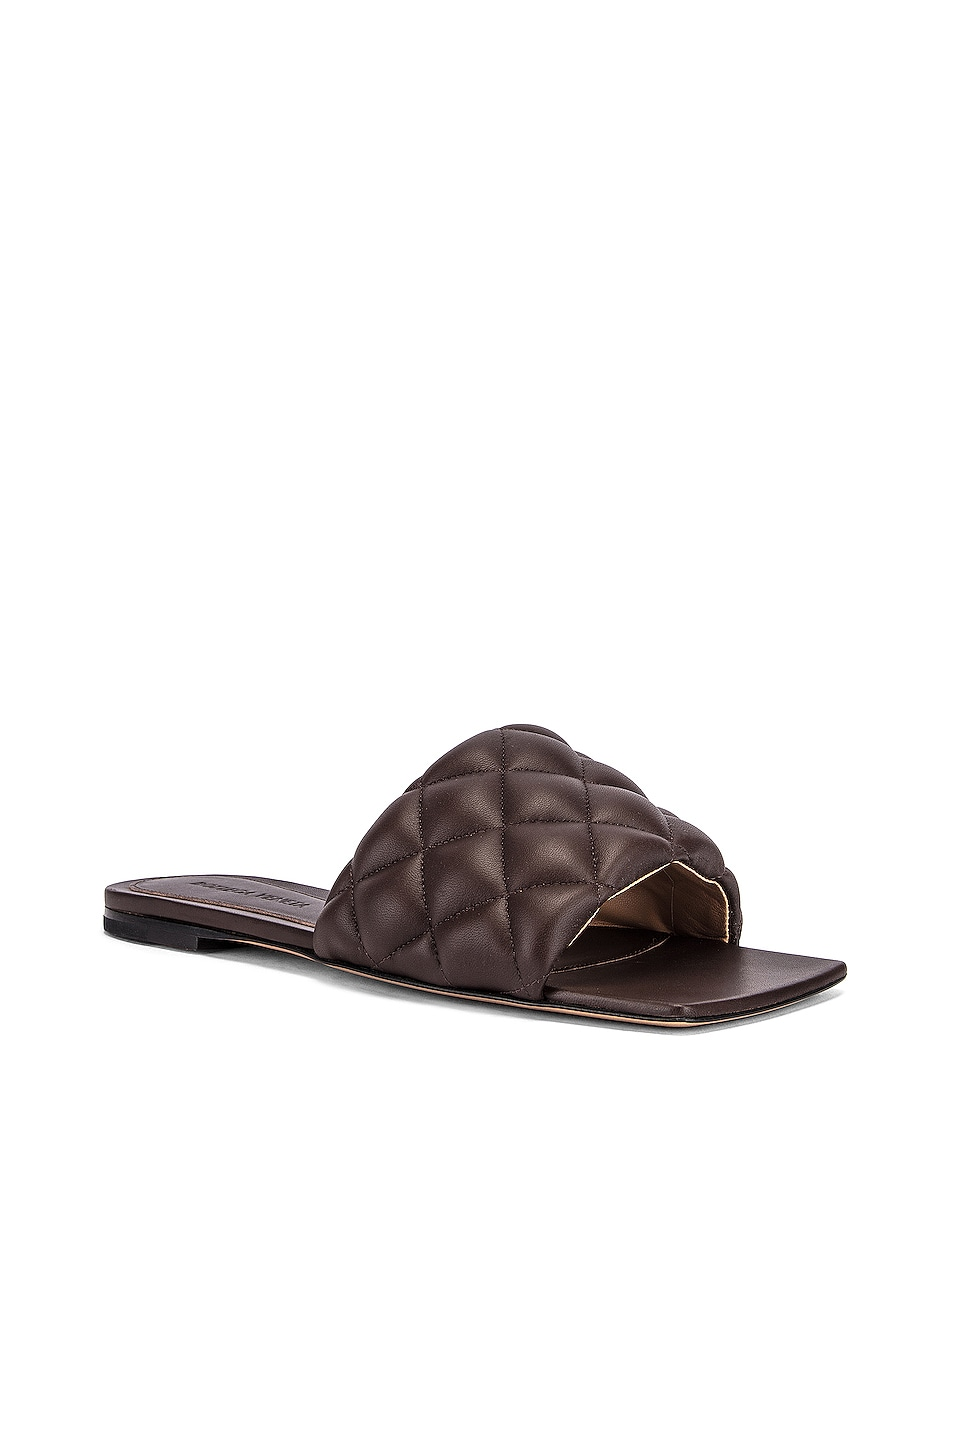 Image 2 of Bottega Veneta Leather Quilted Slides in Chocolate